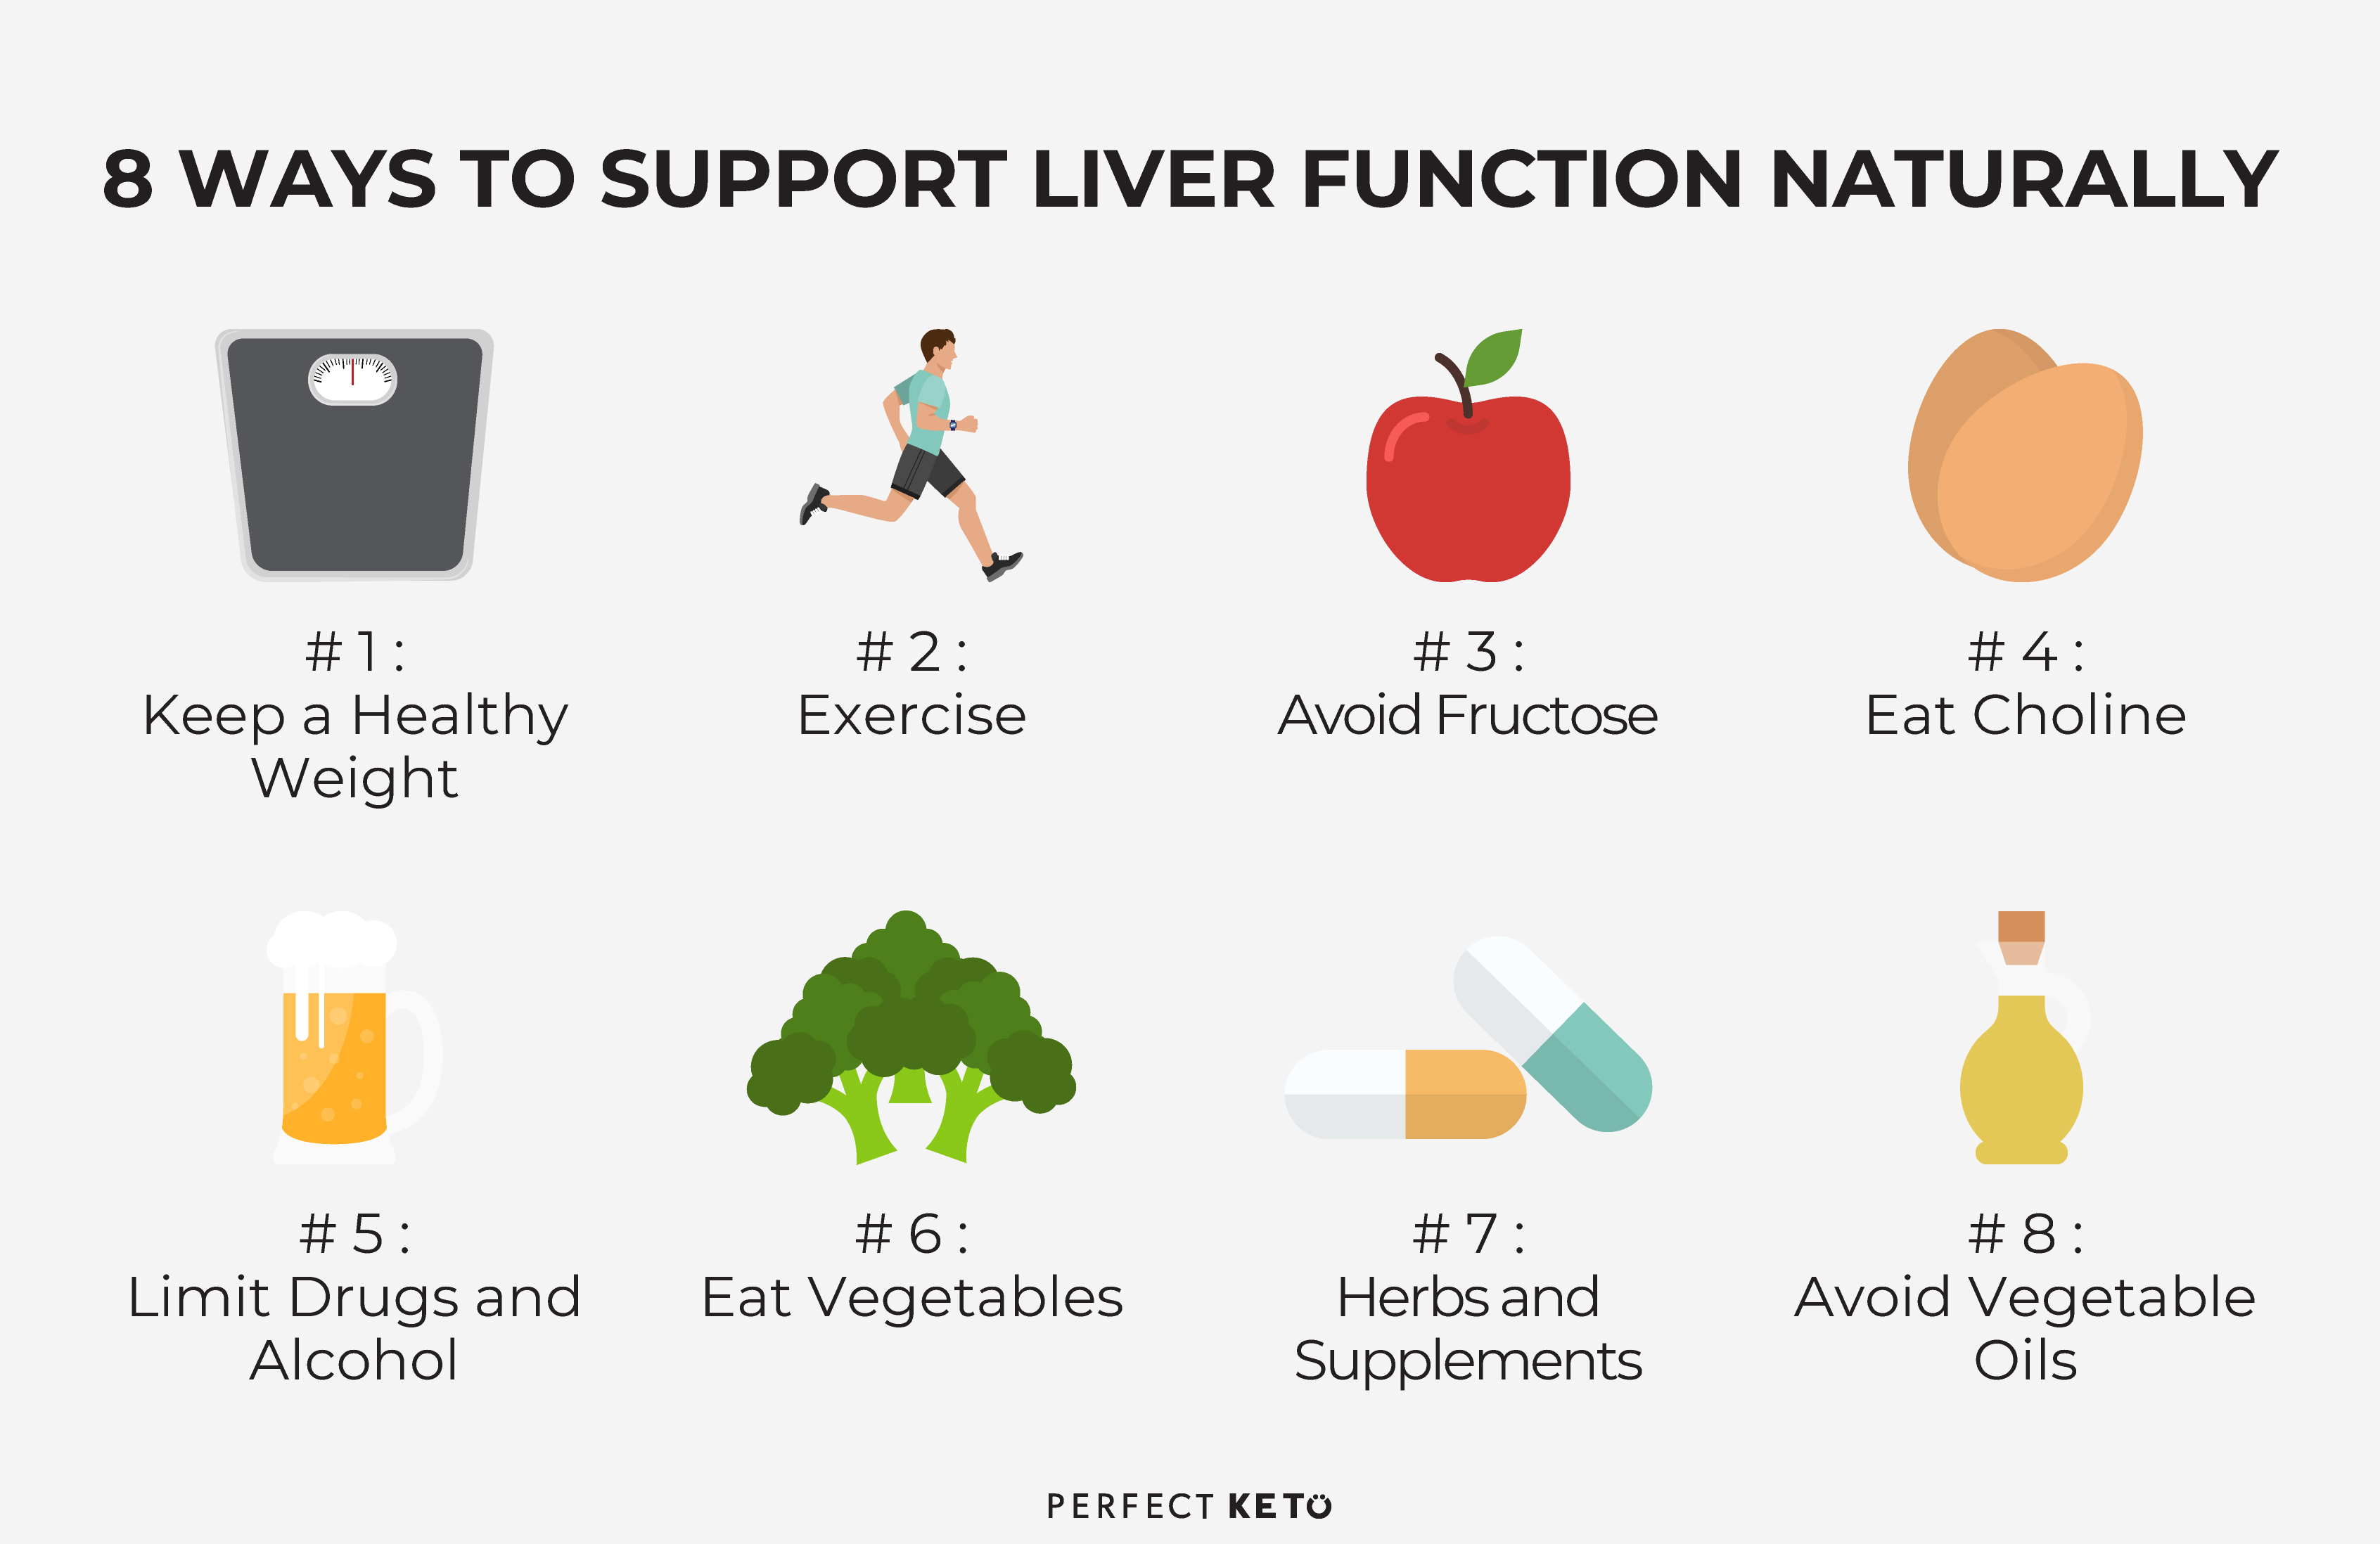 8-ways-to-support-liver-function-naturally.jpg